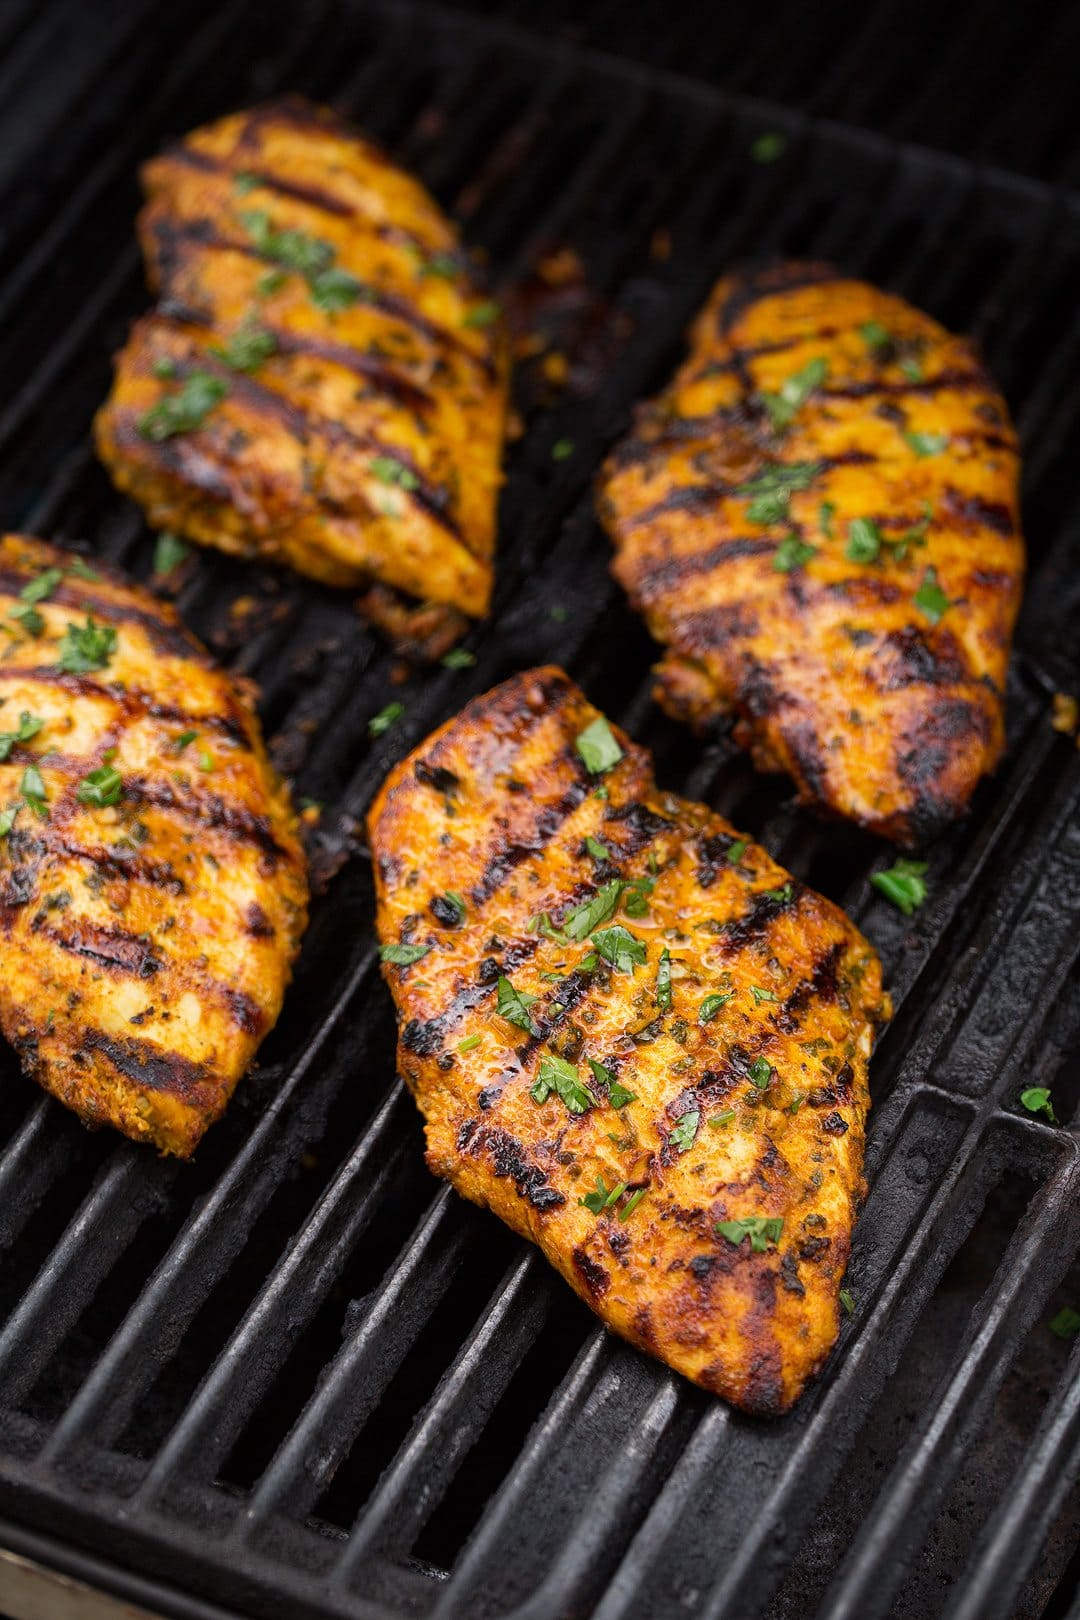 Four boneless skinless chicken breasts cooking on grill.